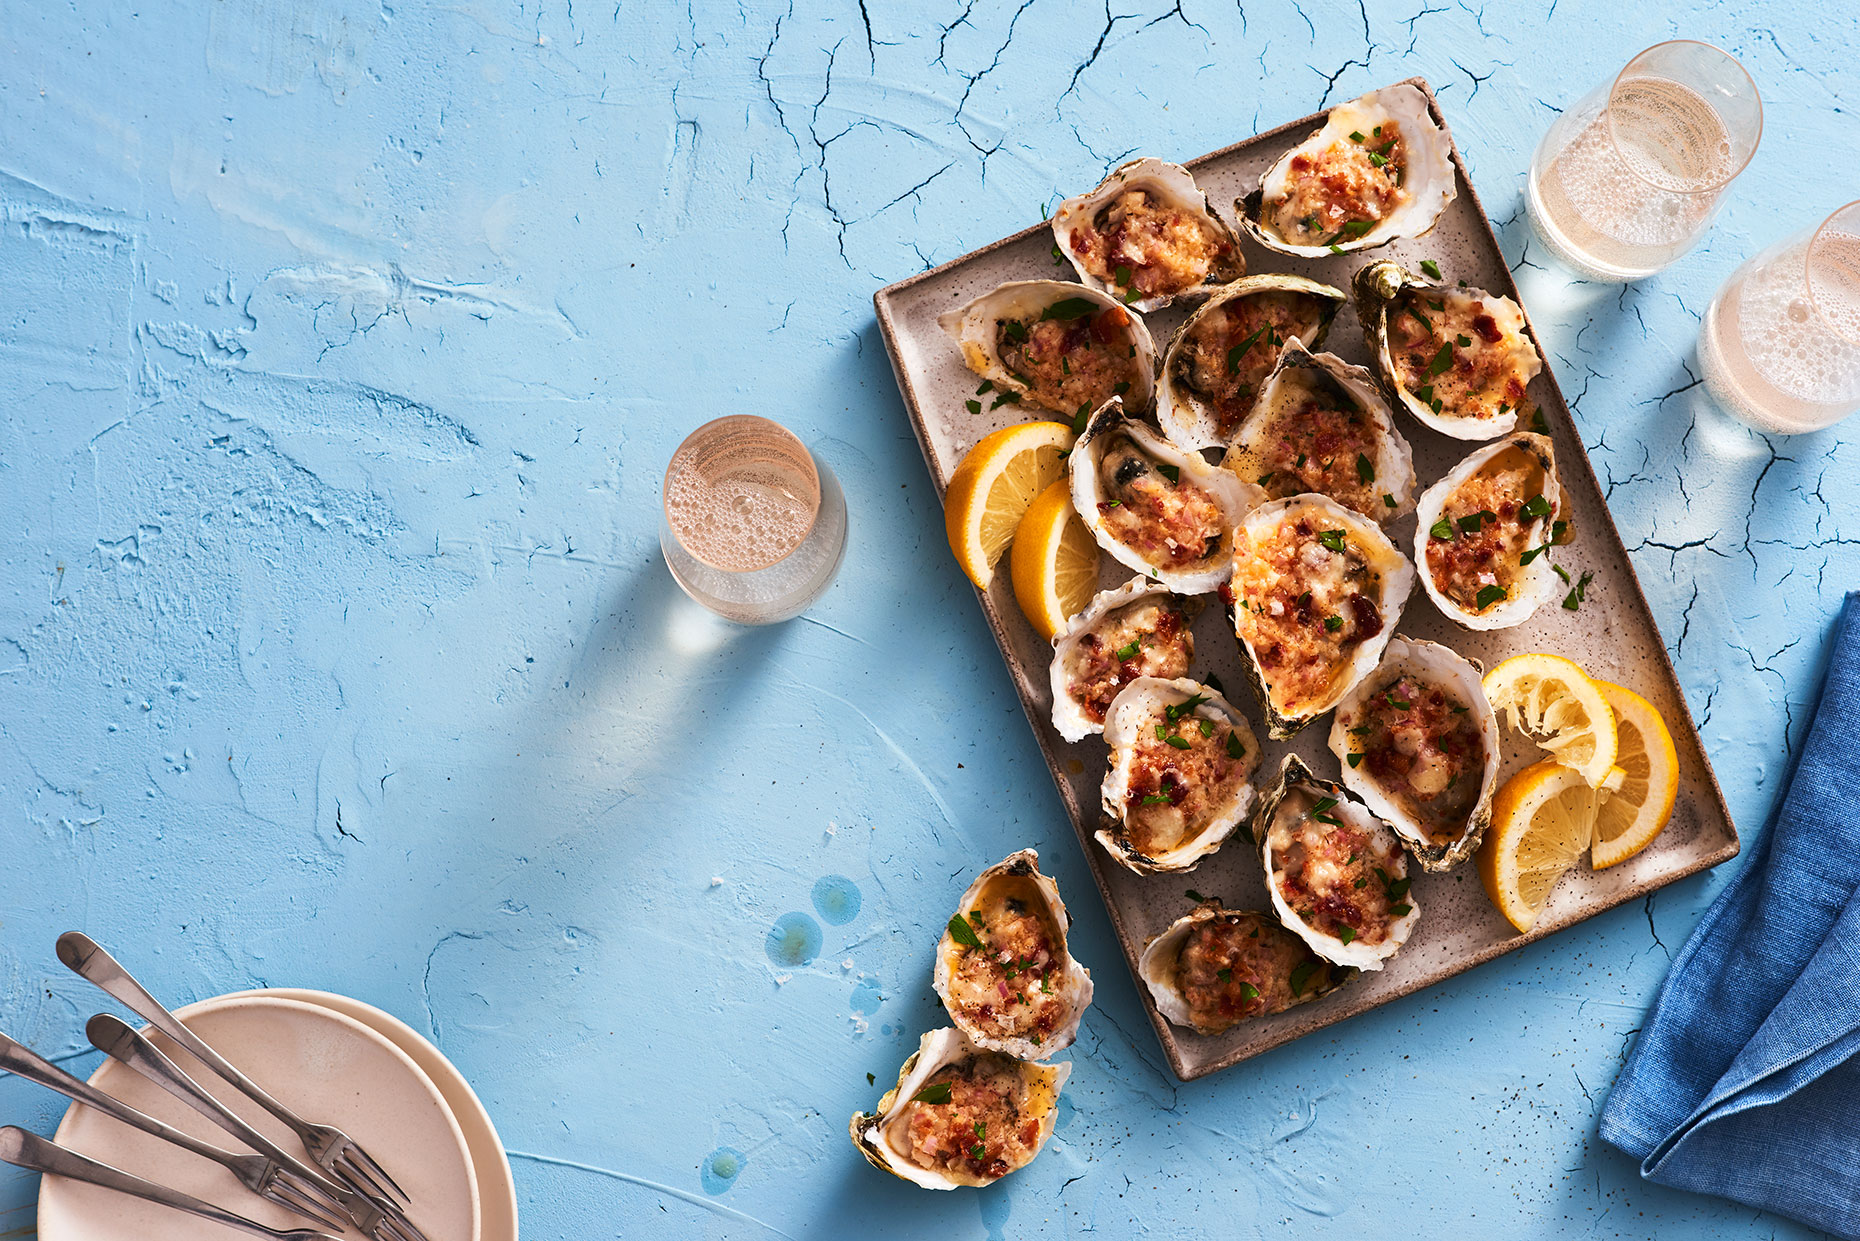 Wine Enthusiast Sea Fare Article about baked oysters, by Food Photographer Adrian Mueller New York